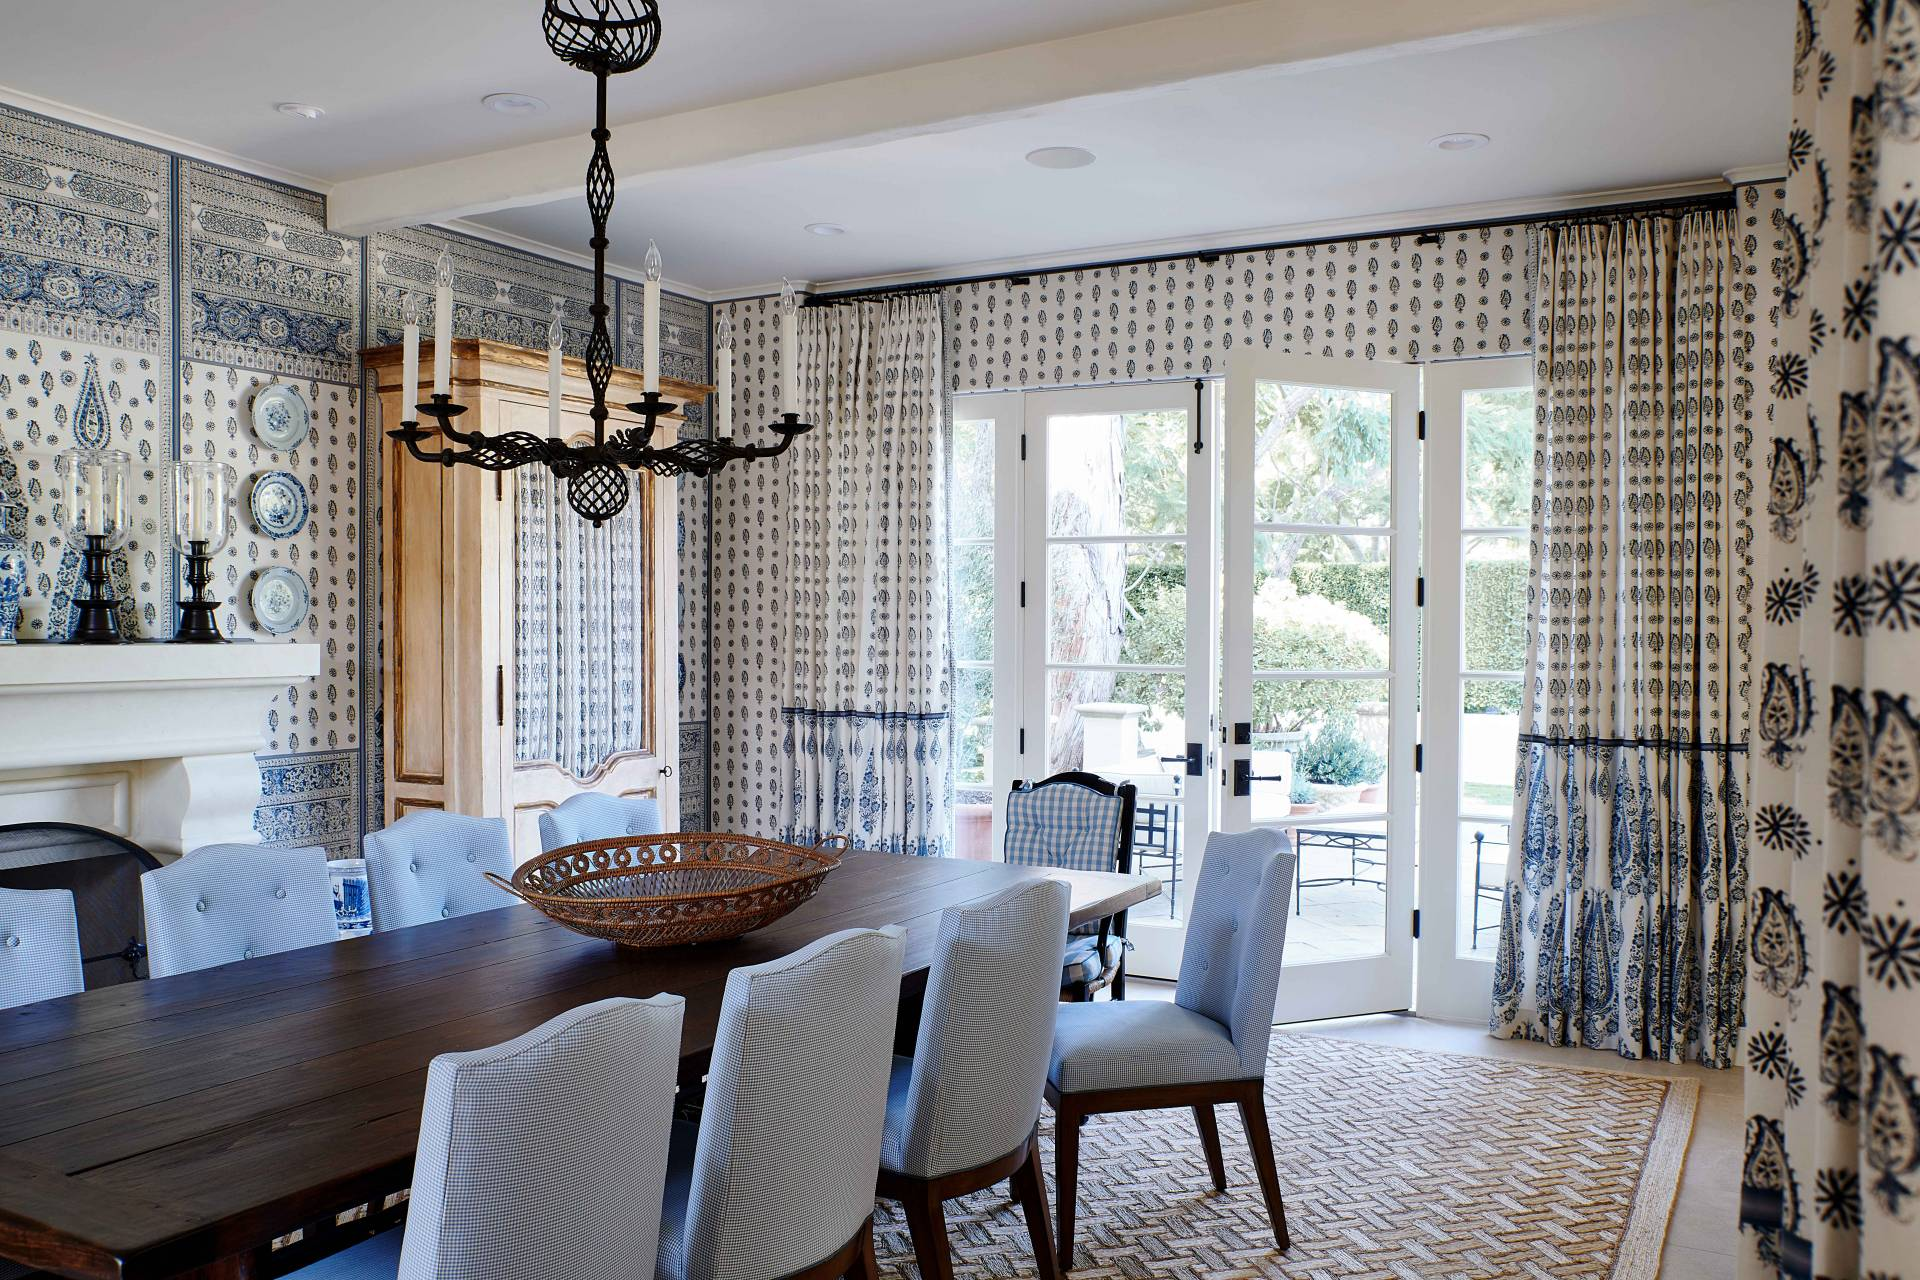 Formal Dining Room Chairs and Drapes